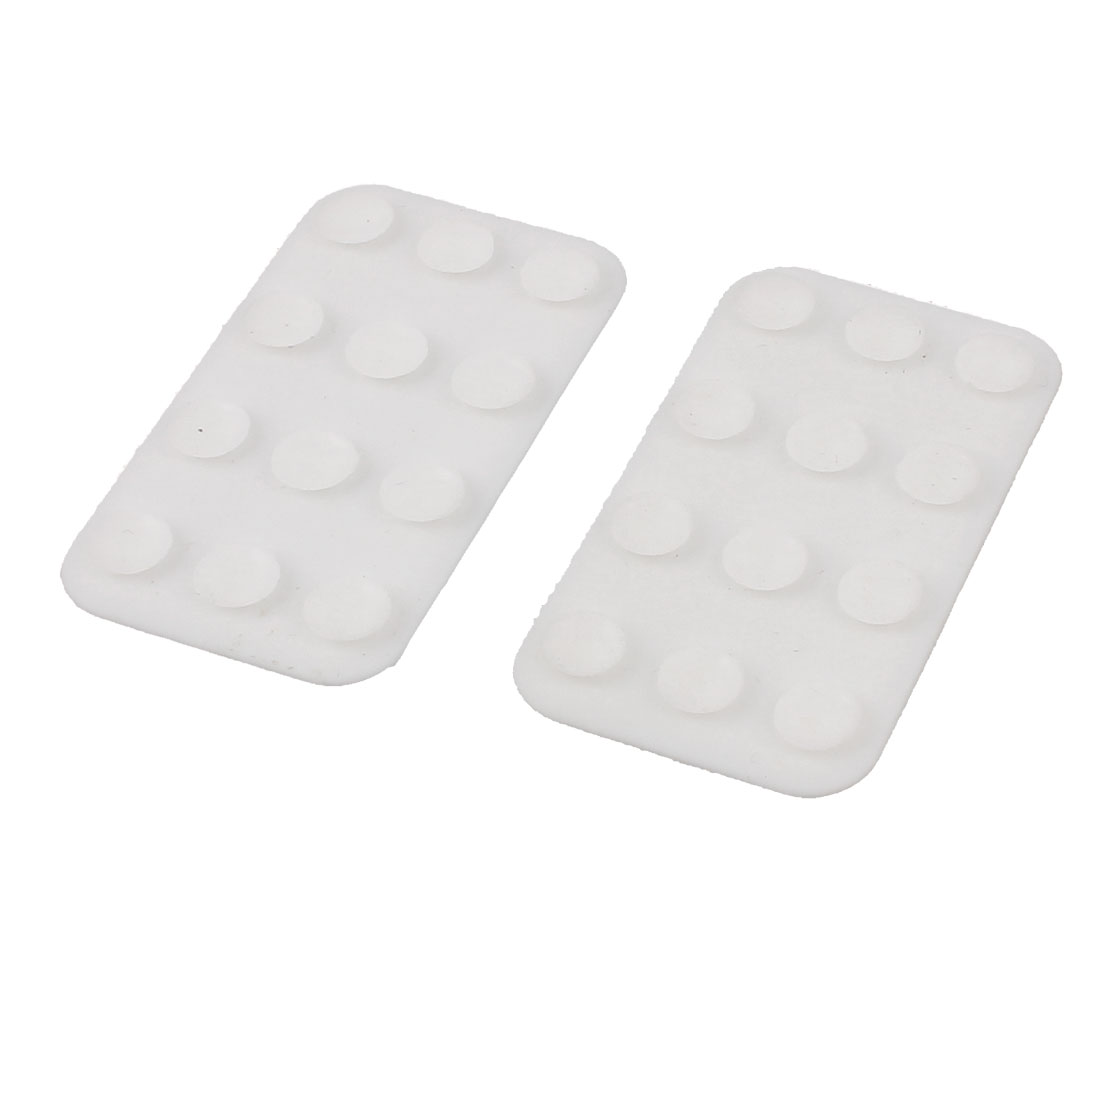 White Silicone Double Side Suction Cup Universal Mobile Phone Sucker Holder 2 Pcs